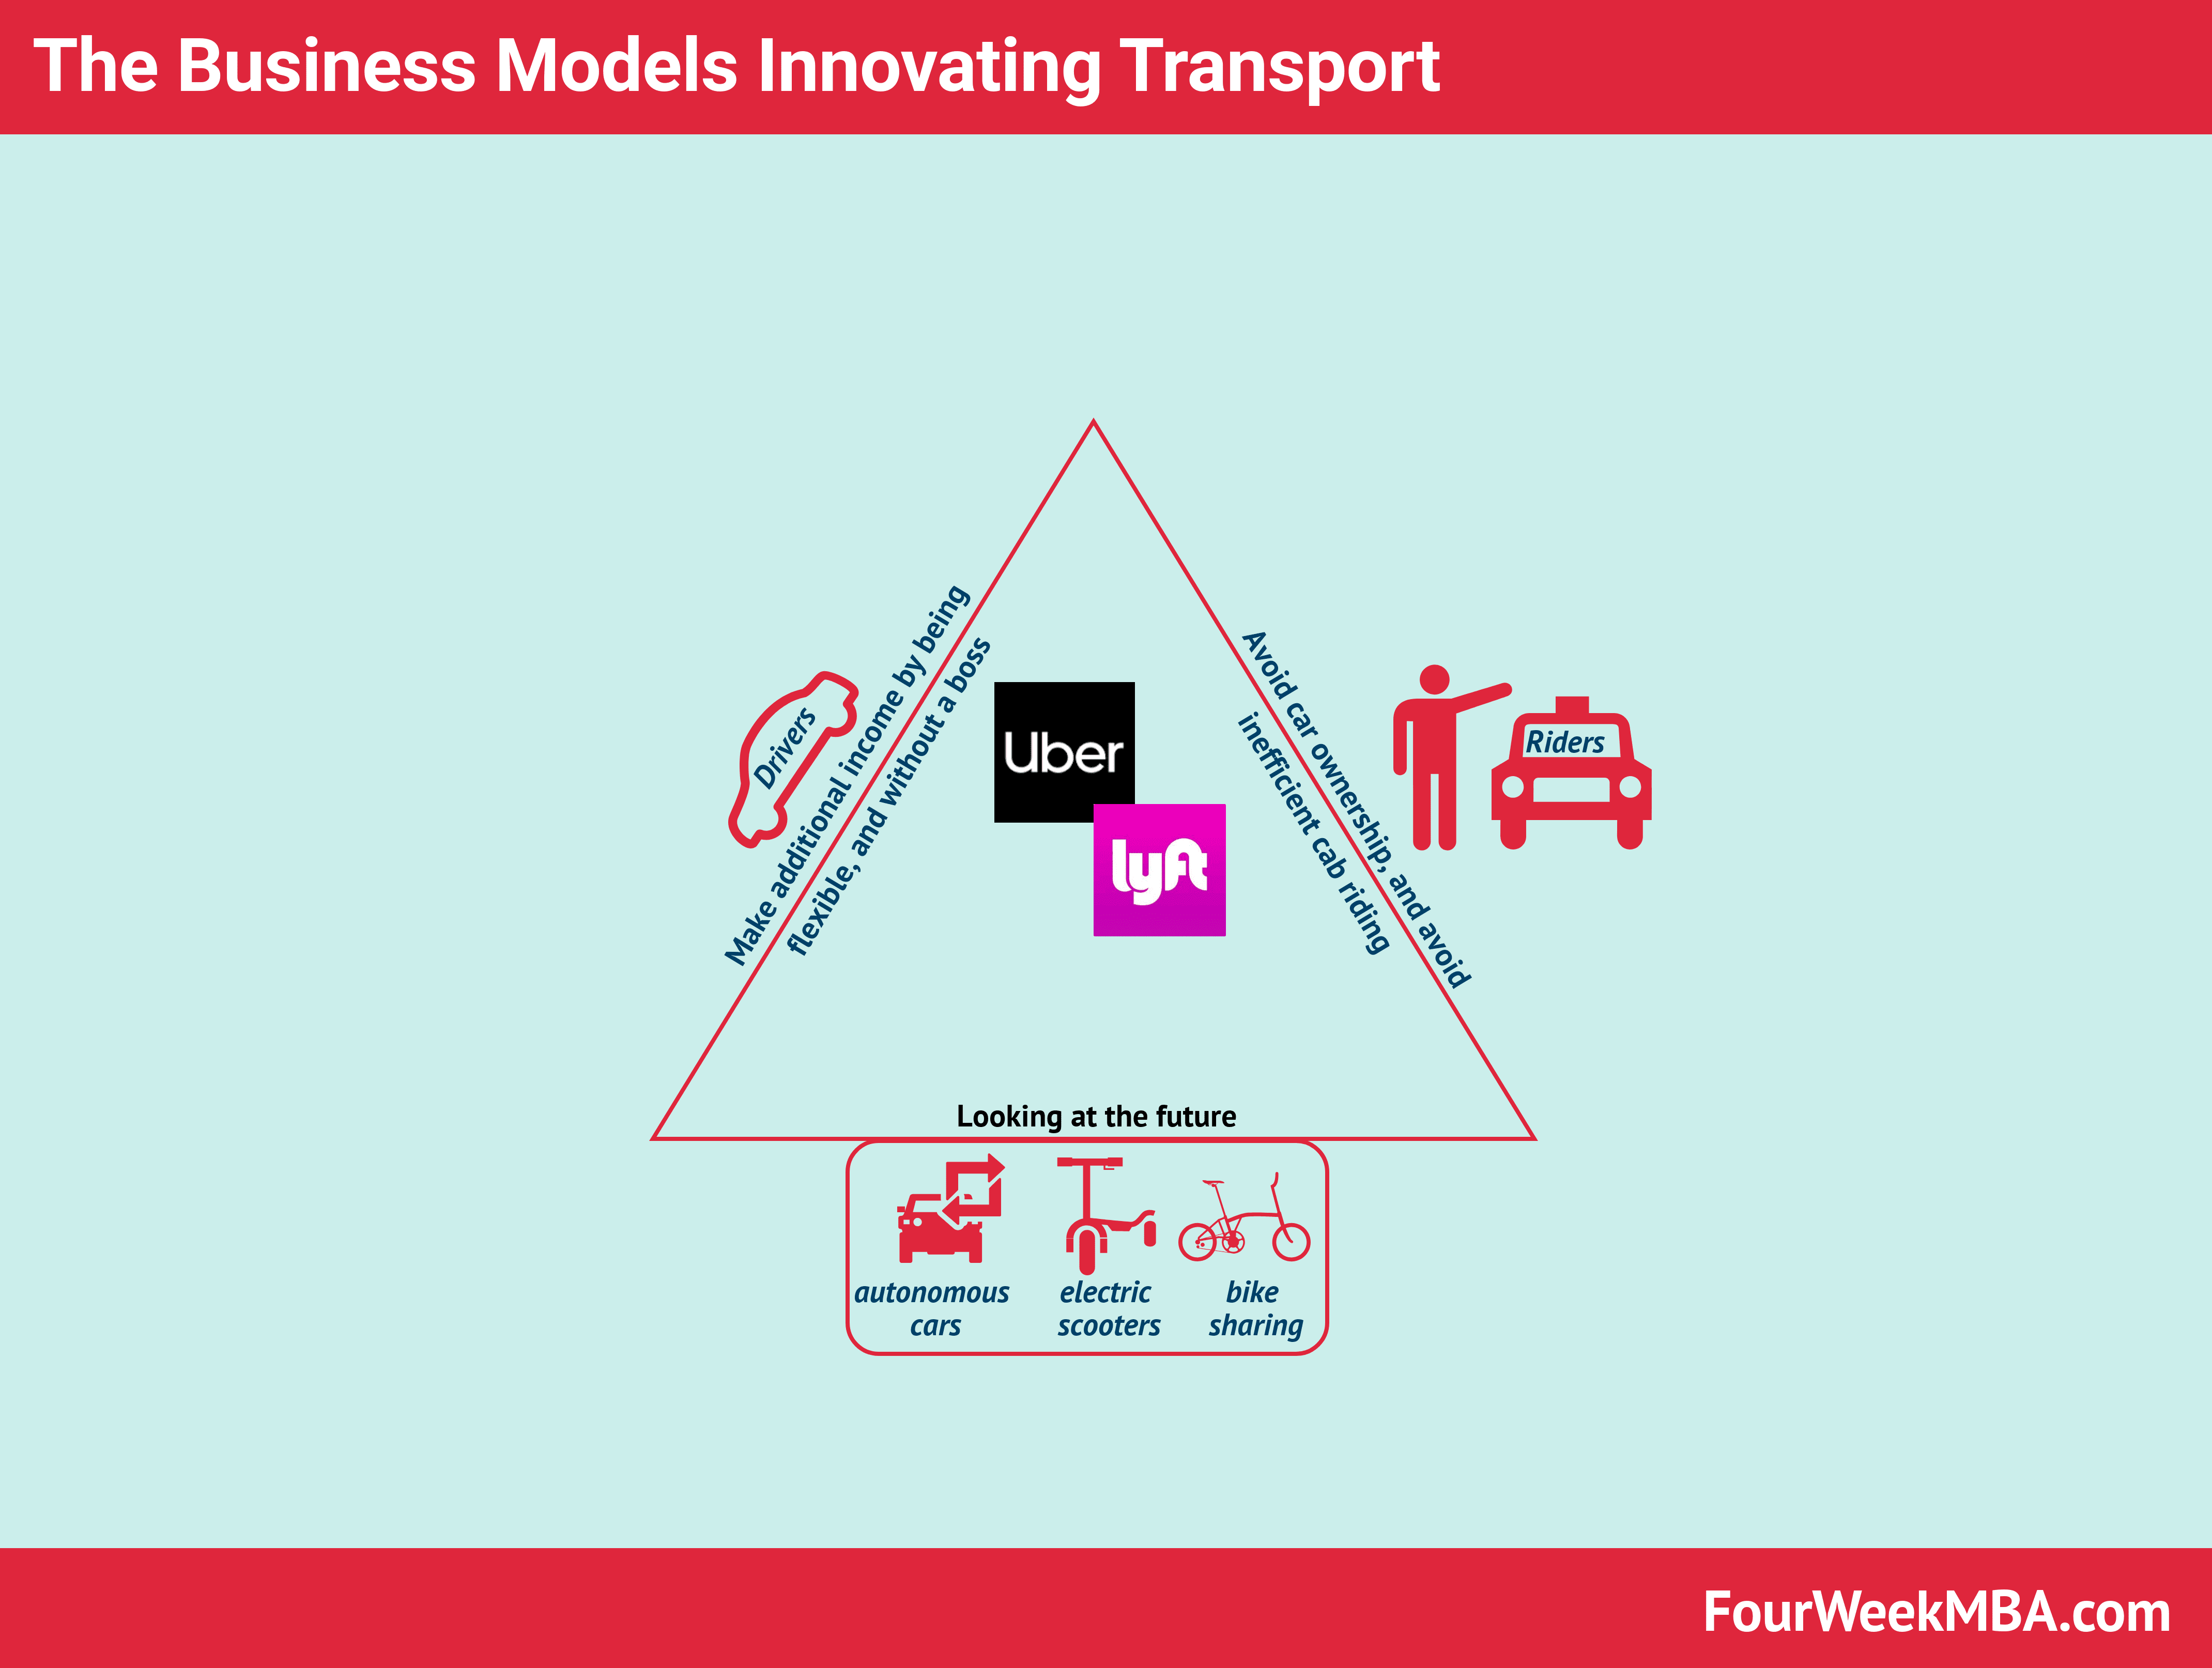 Uber And Lyft Business Models In A Nutshell - FourWeekMBA